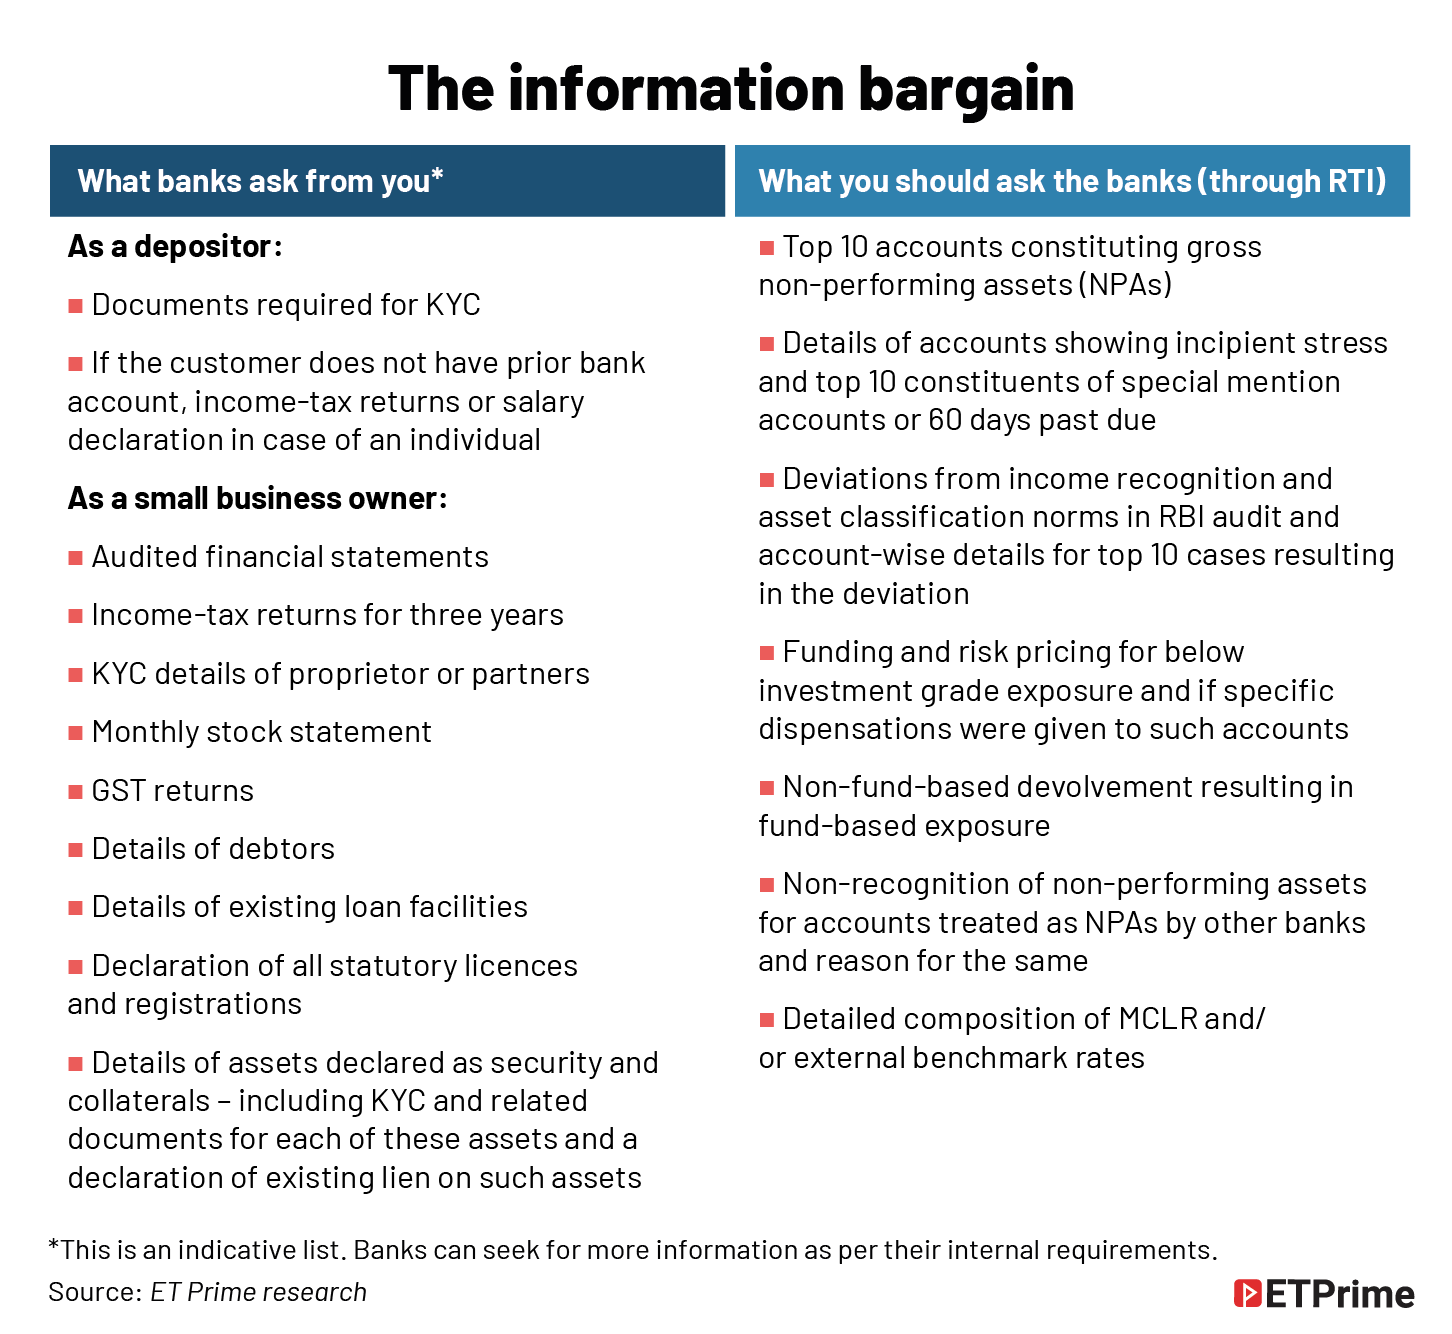 The information bargain@2x